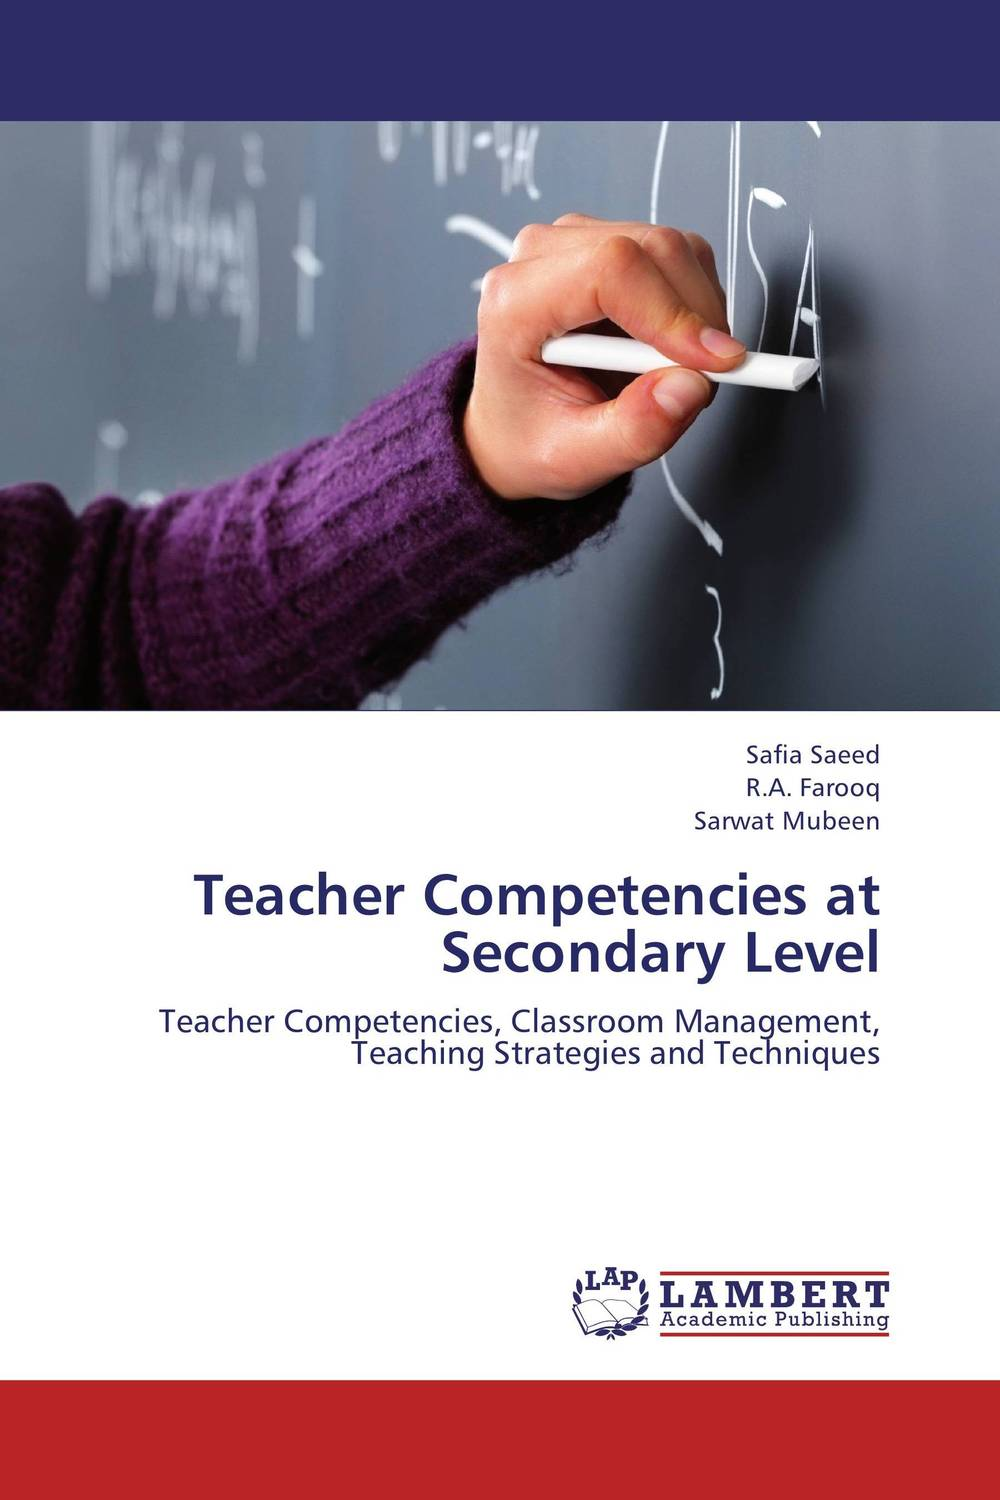 Teacher Competencies at Secondary Level erin muschla math teacher s survival guide practical strategies management techniques and reproducibles for new and experienced teachers grades 5 12